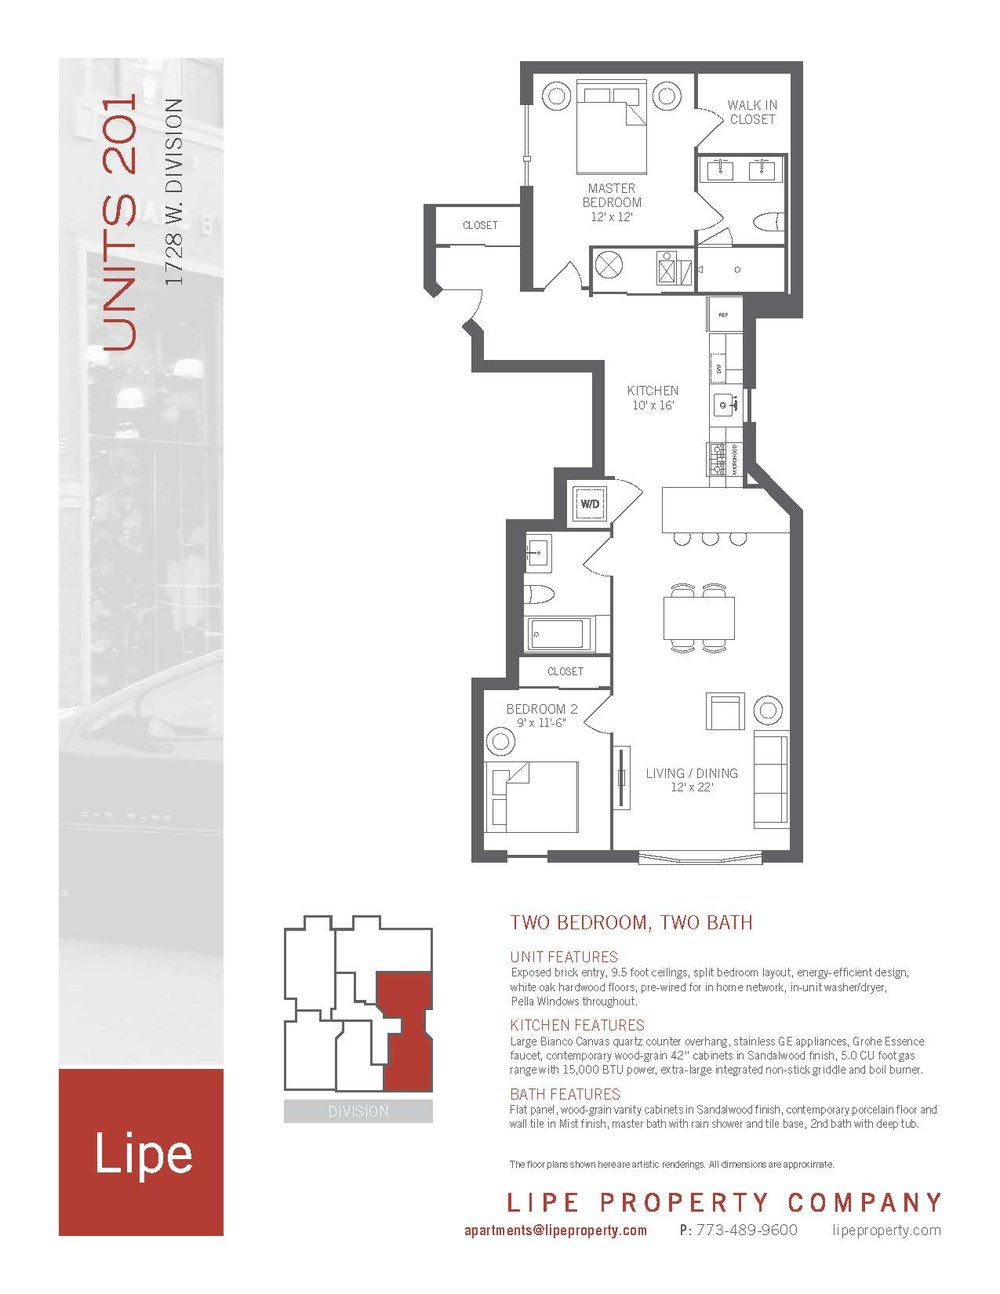 1728-West-Division-201-Floorplan-Chicago-apartment-for-rent.jpg